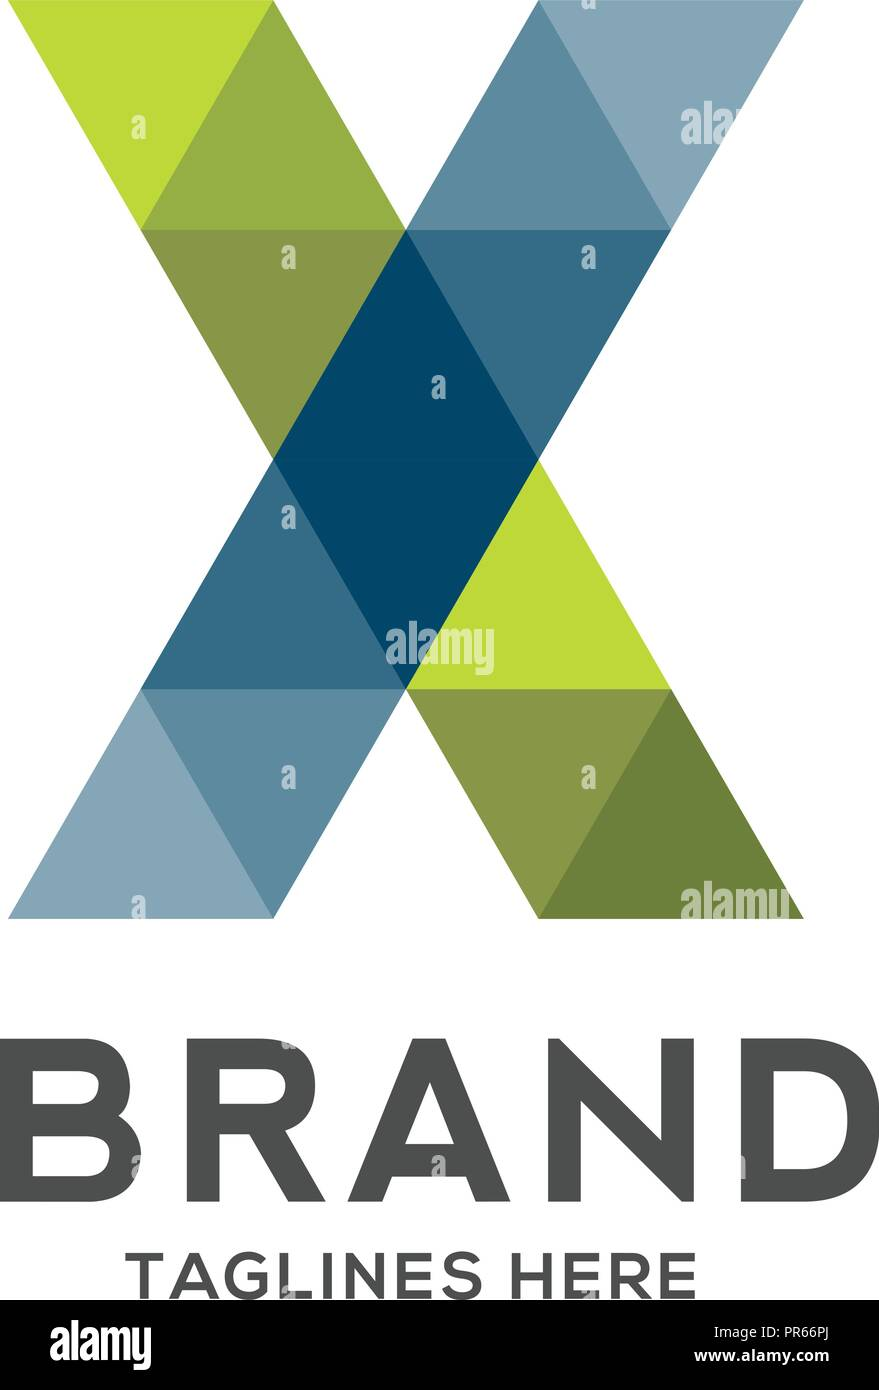 abstract trend polygon letter x logo design template art tech media app creative sign colorful symbol icon bright alphabet font